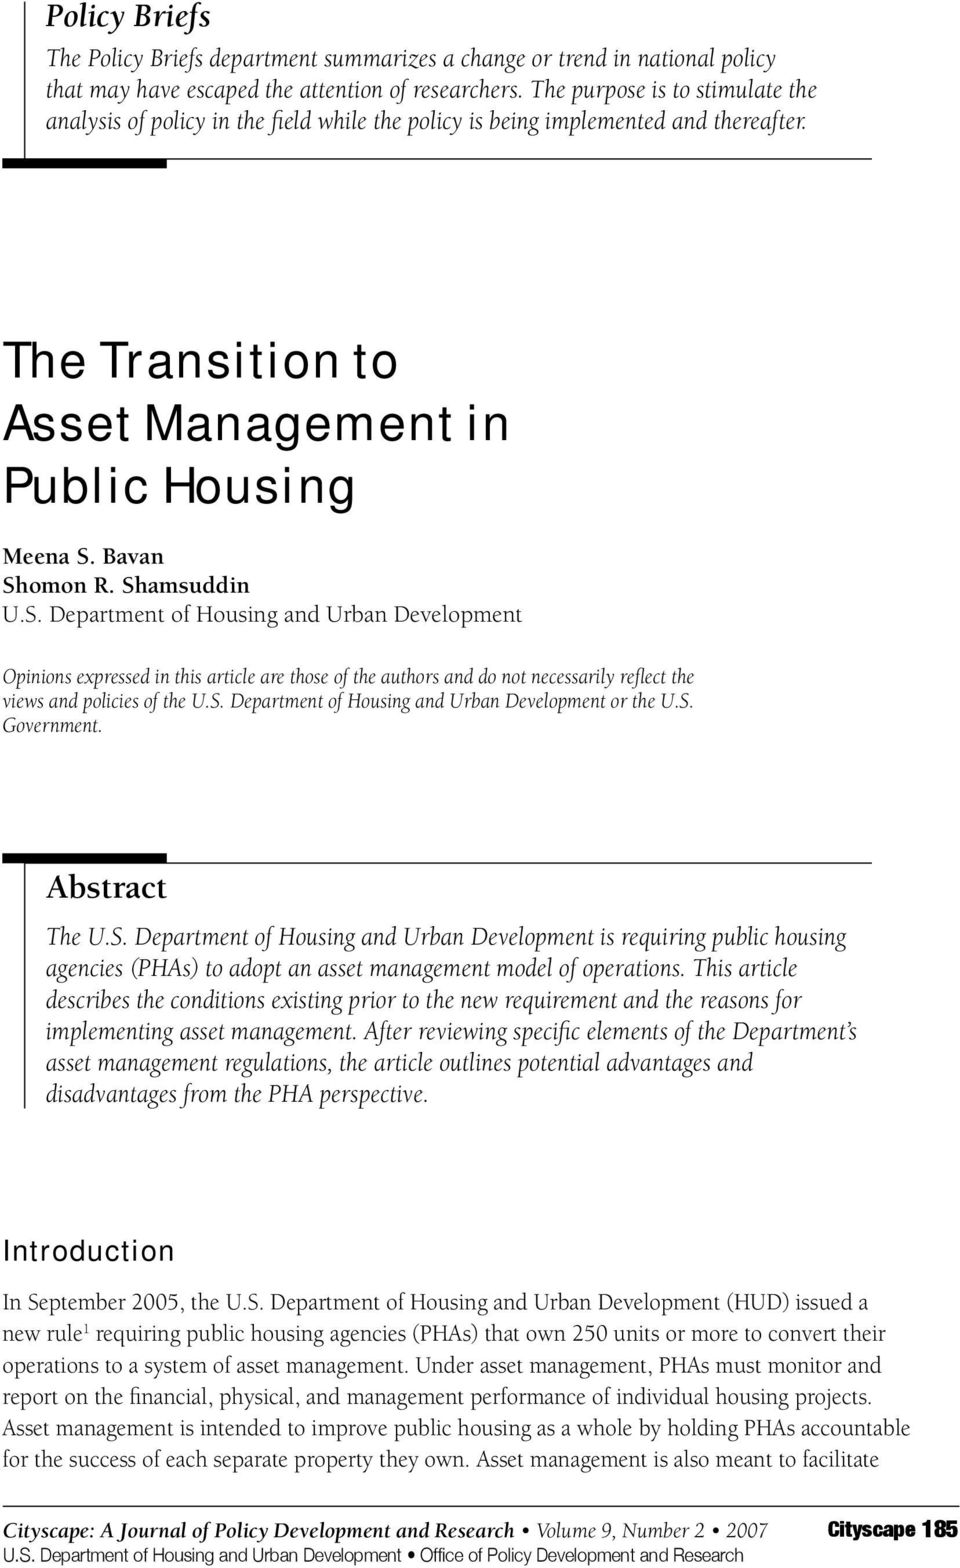 Shamsuddin U.S. Department of Housing and Urban Development Opinions expressed in this article are those of the authors and do not necessarily reflect the views and policies of the U.S. Department of Housing and Urban Development or the U.